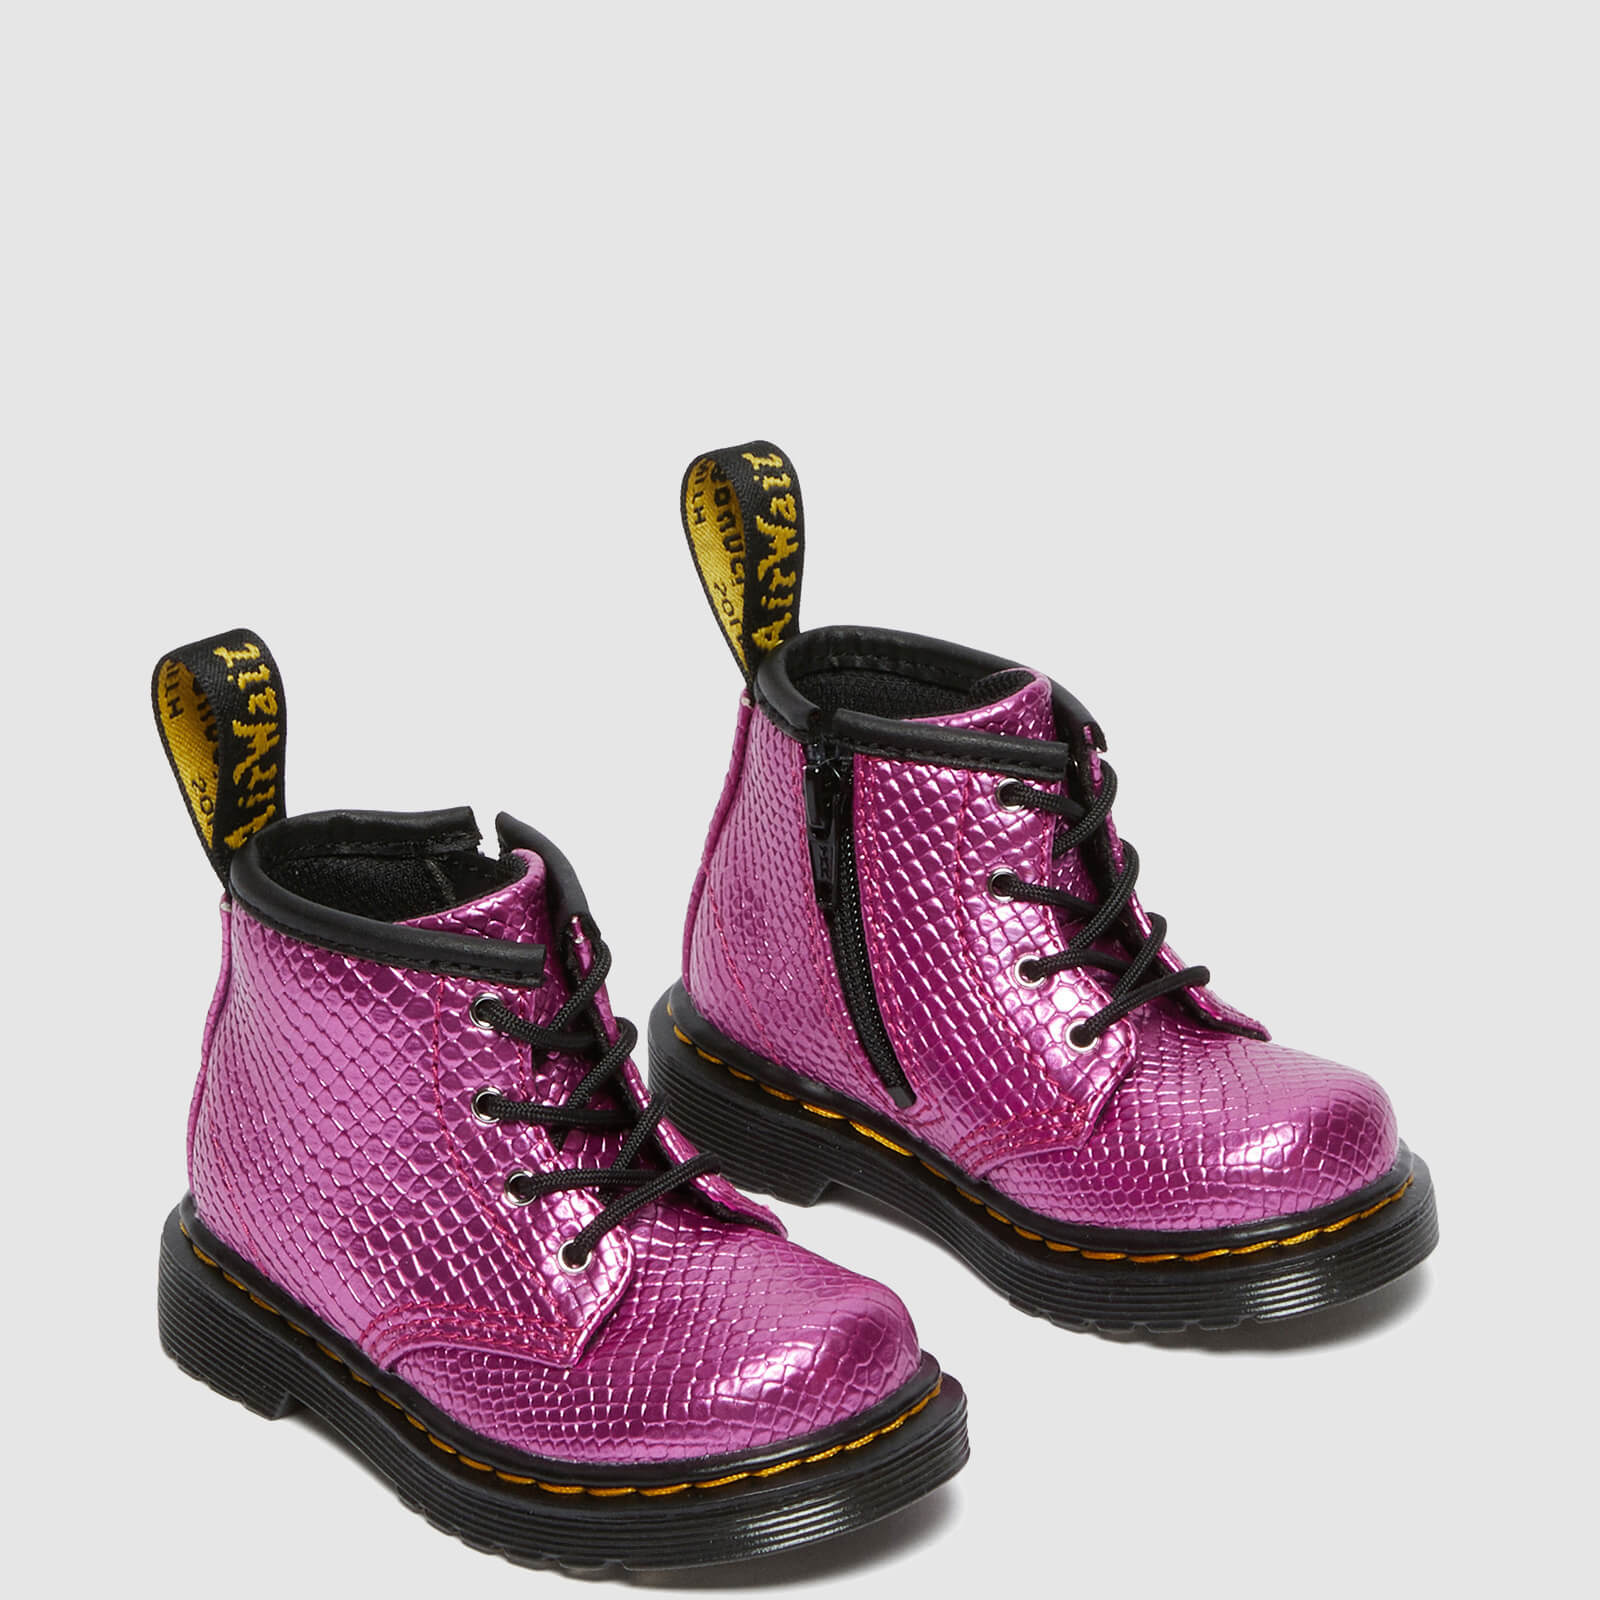 Dr. Martens Babies' 1460 Patent Lamper Lace Up Boots - Pink Reptile Emboss - Uk 4 Baby